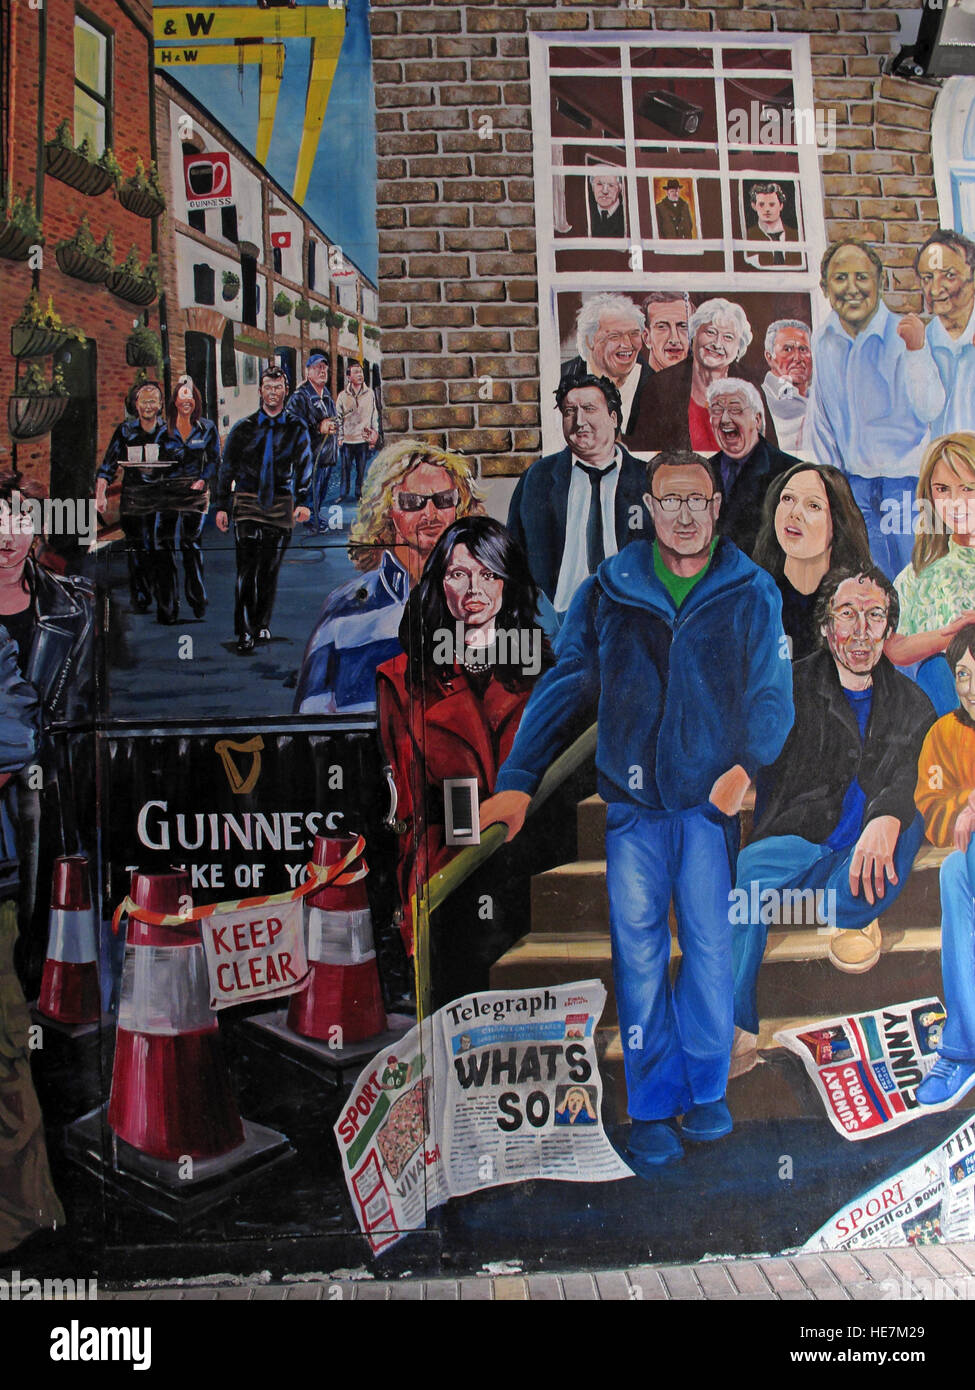 BT1,bars,pubs,duke,of,york,alley,off,Donegall St,street,drinks,drinking,classic,ale,beer,bers,ales,half,bap,area,craic,murals,art,painting,painting,artwork,artworks,Titanic mural,artworks,Irish,famous people,Cathedral Quarter,Half Bap,GoTonySmith,@HotpixUK,Tony,Smith,UK,GB,Great,Britain,United,Kingdom,Irish,British,Ireland,problem,with,problem with,issue with,NI,Northern,Northern Ireland,Belfast,City,Centre,Art,Artists,the,troubles,The Troubles,Good Friday Agreement,Peace,honour,painting,wall,walls,tribute,republicanism,Fight,Justice,West,Beal,feirste,martyrs,social,tour,tourism,tourists,urban,six,counties,6,backdrop,county,Antrim,Buy Pictures of,Buy Images Of,Images of,Stock Images,Tony Smith,United Kingdom,Great Britain,British Isles